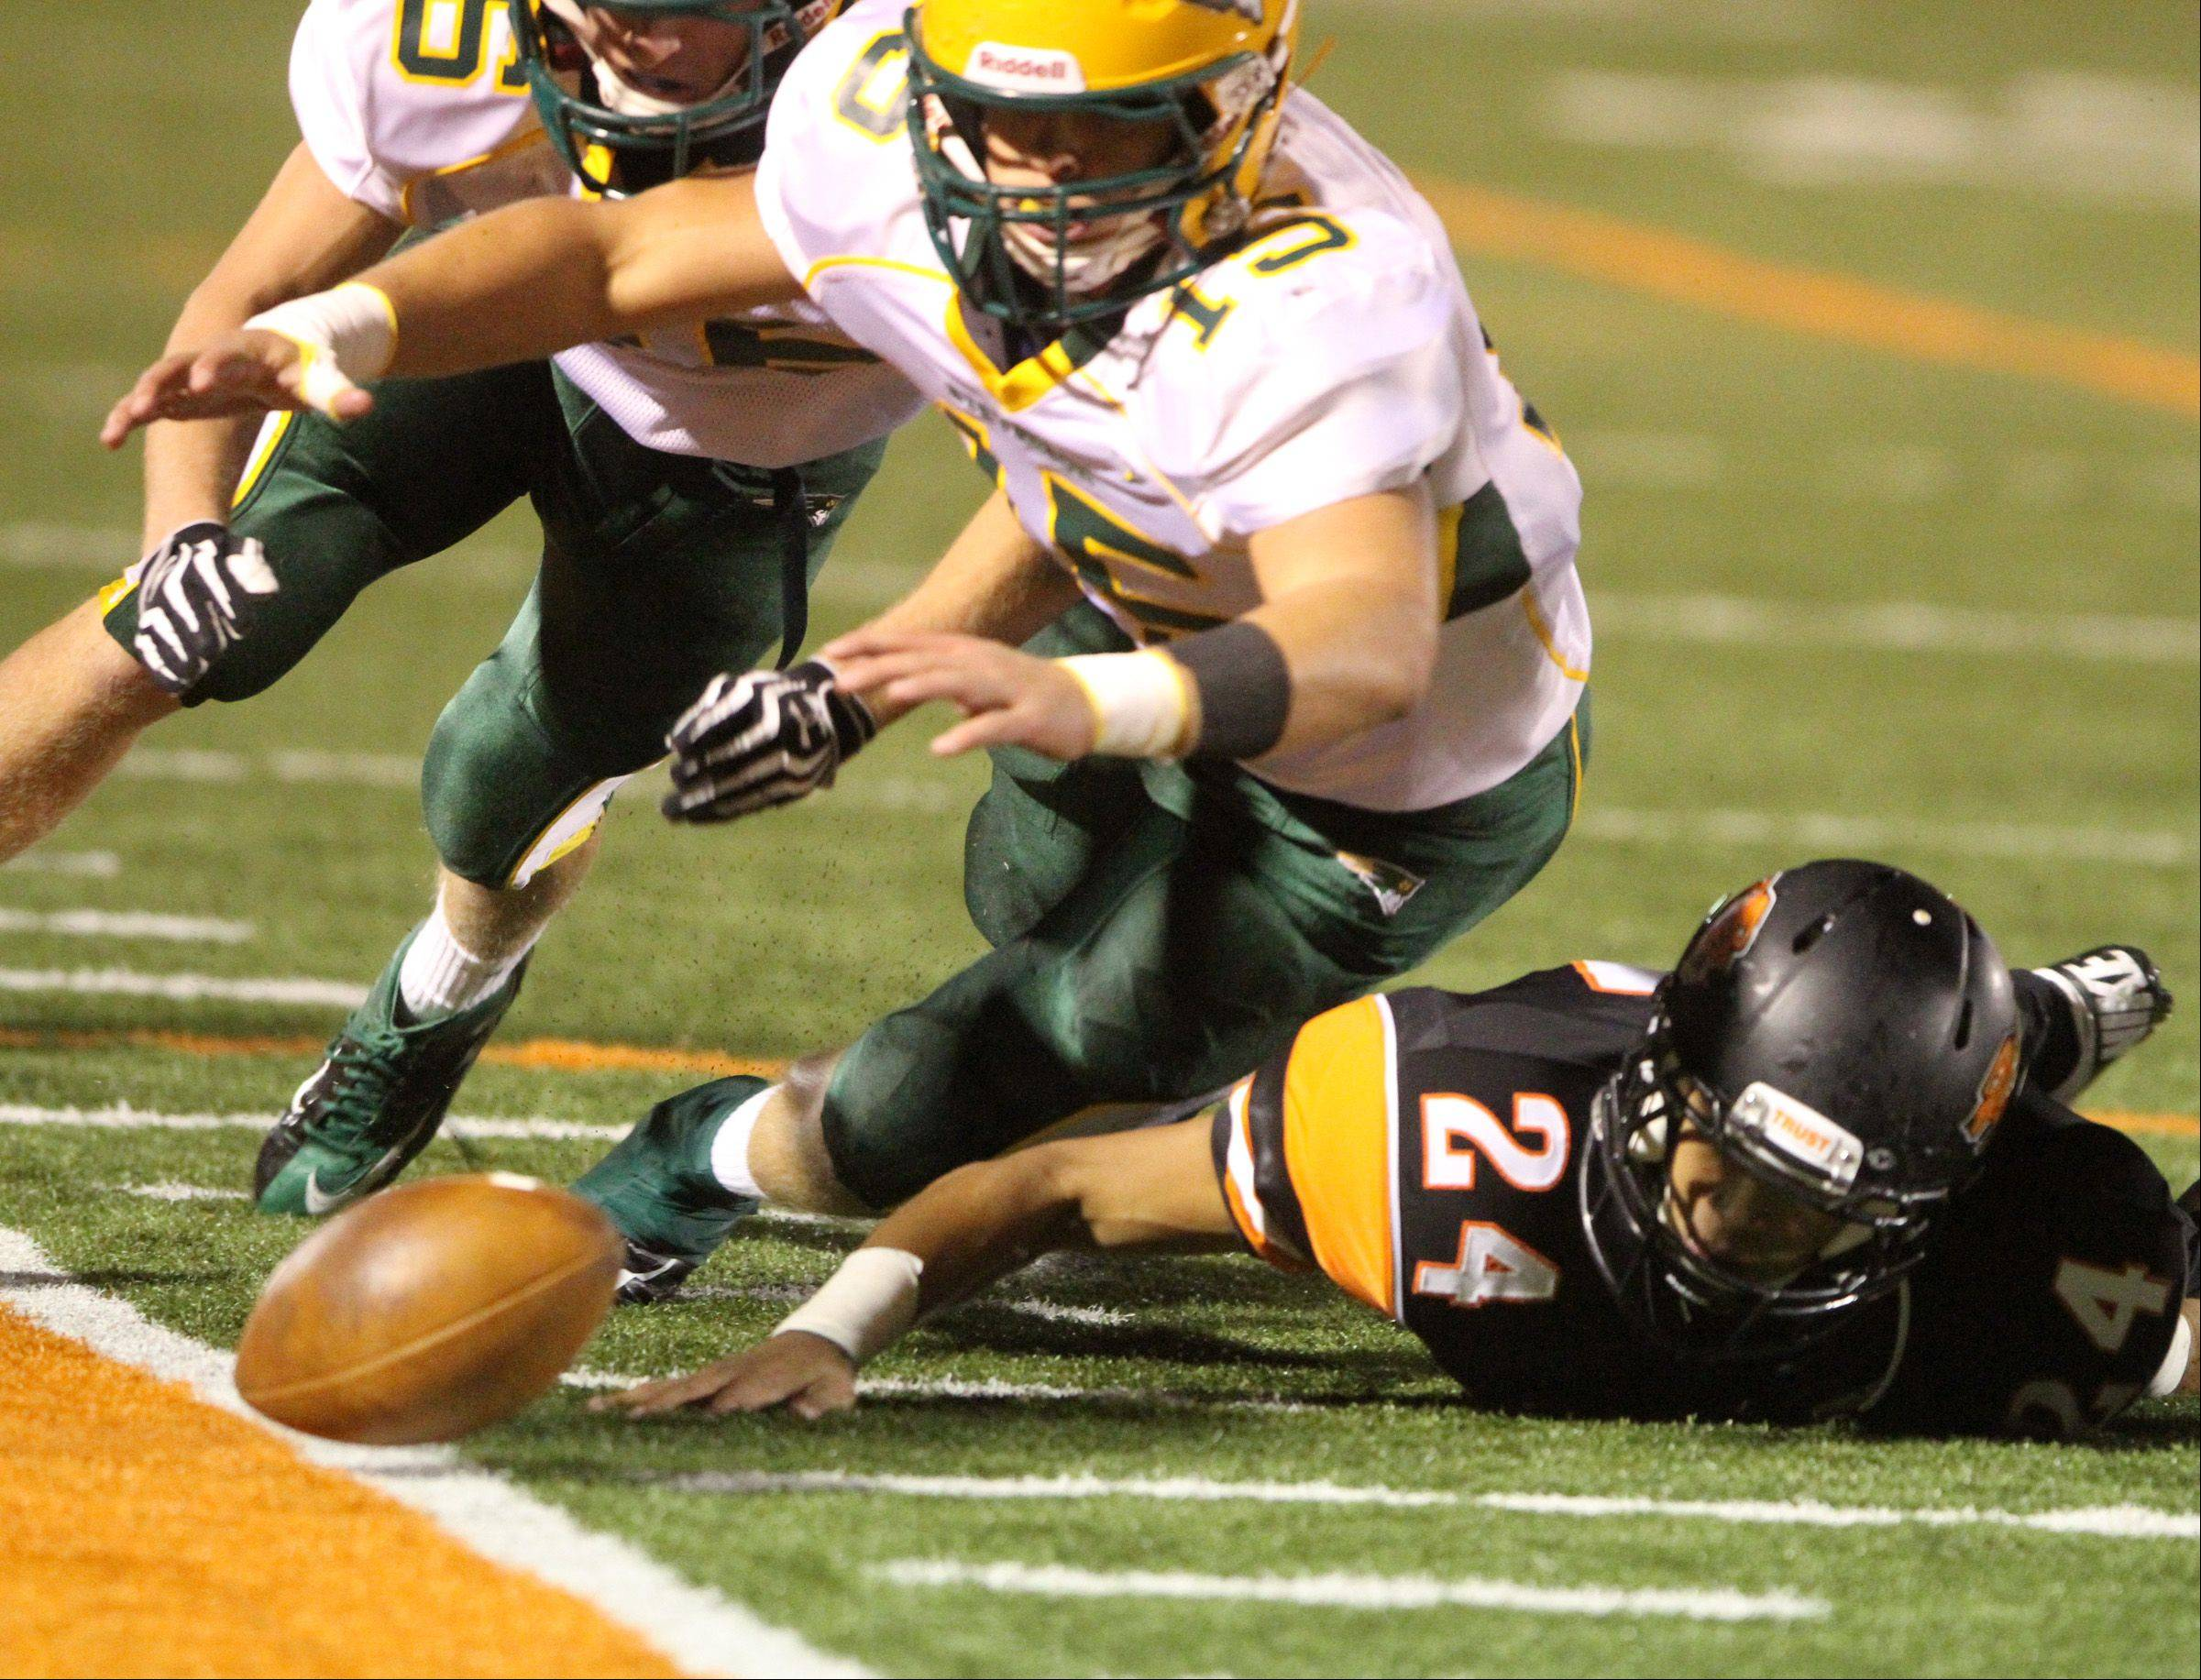 Stevenson's Sean O'Connell dives for the ball after a Libertyville fumble.